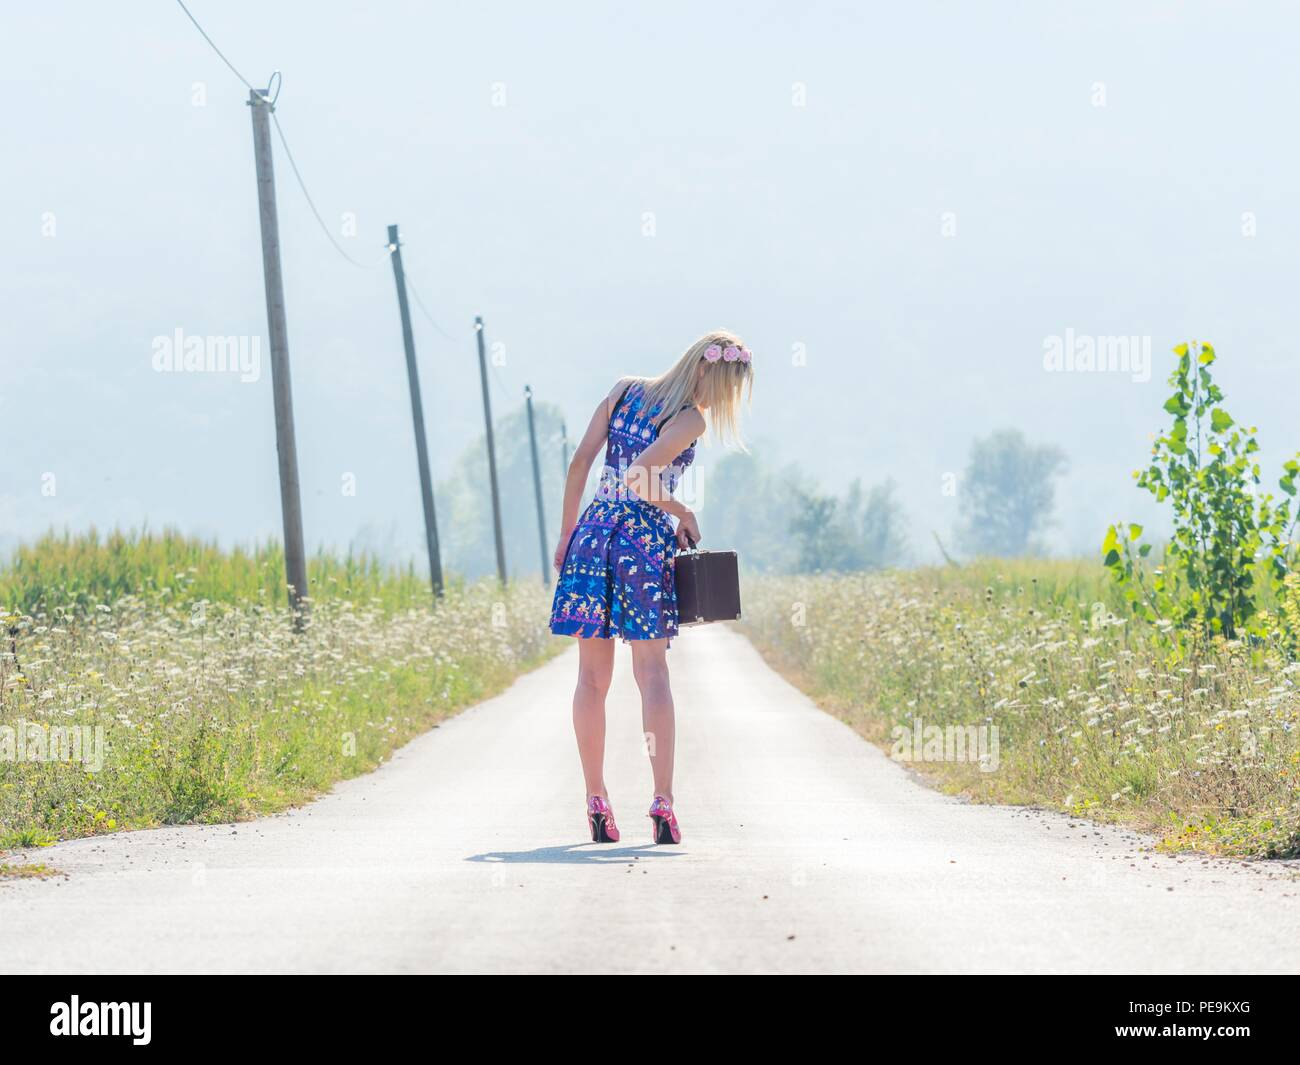 Sunlight mid-day 20s twenties attractive adult young woman outdoors by foot feet traveler traveling or run-away MR minidress clothing Stock Photo